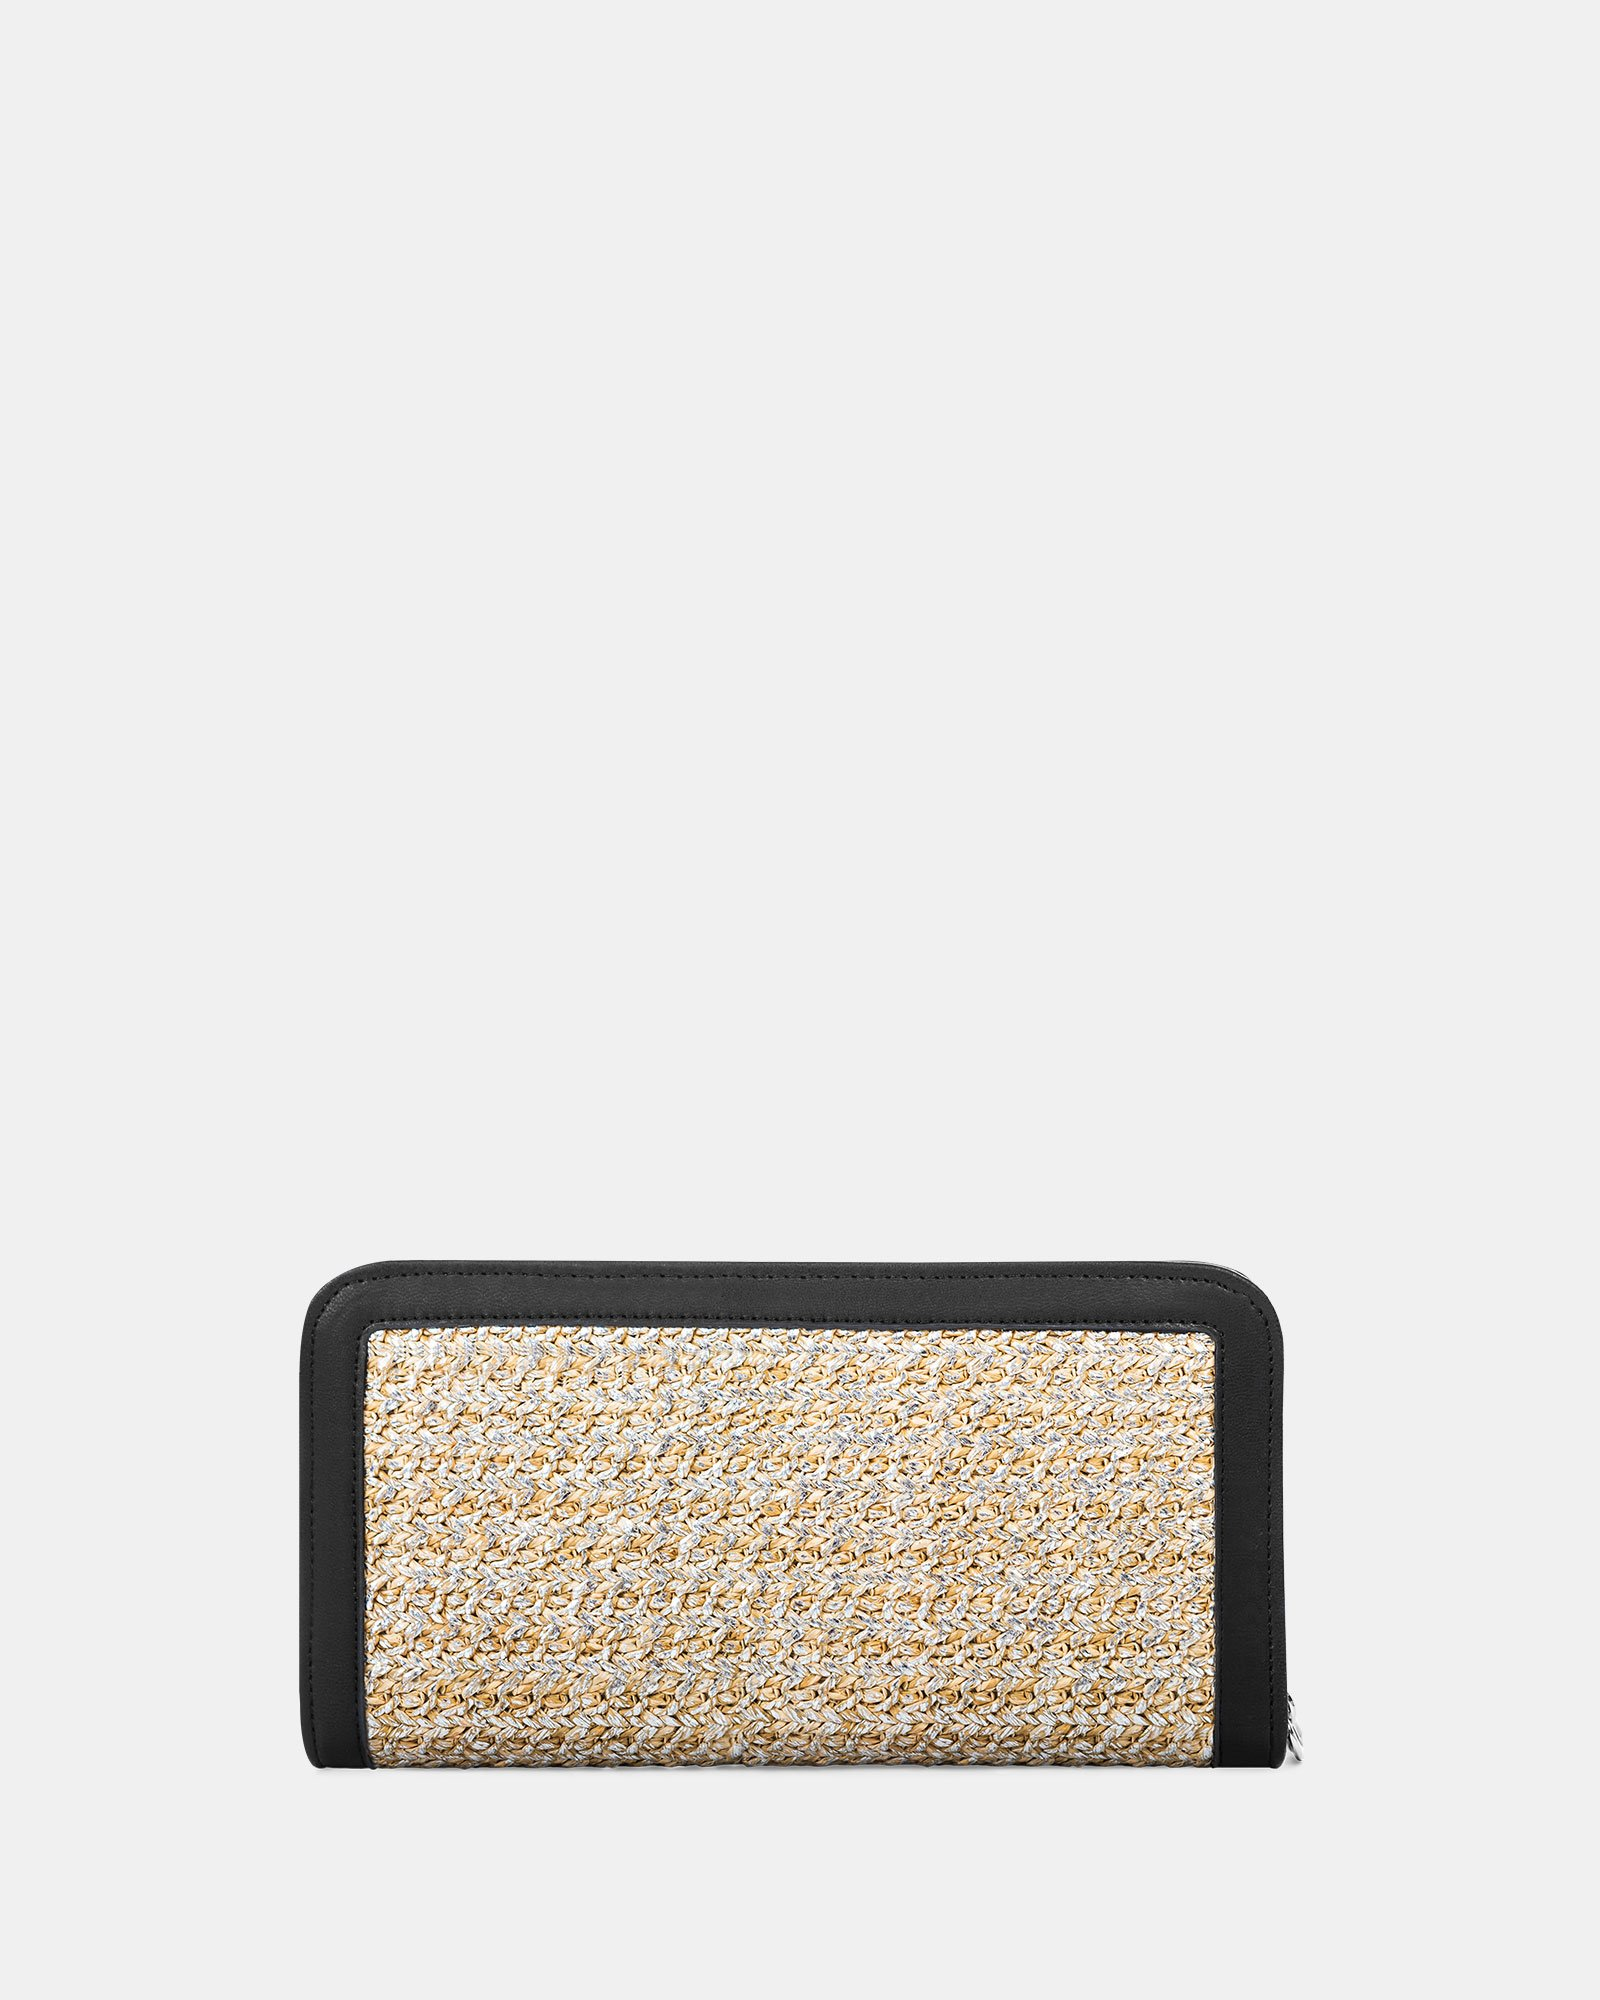 Carita - wallet with zip closure in Straw & leather-like trims -Natural/black - Céline Dion - Zoom